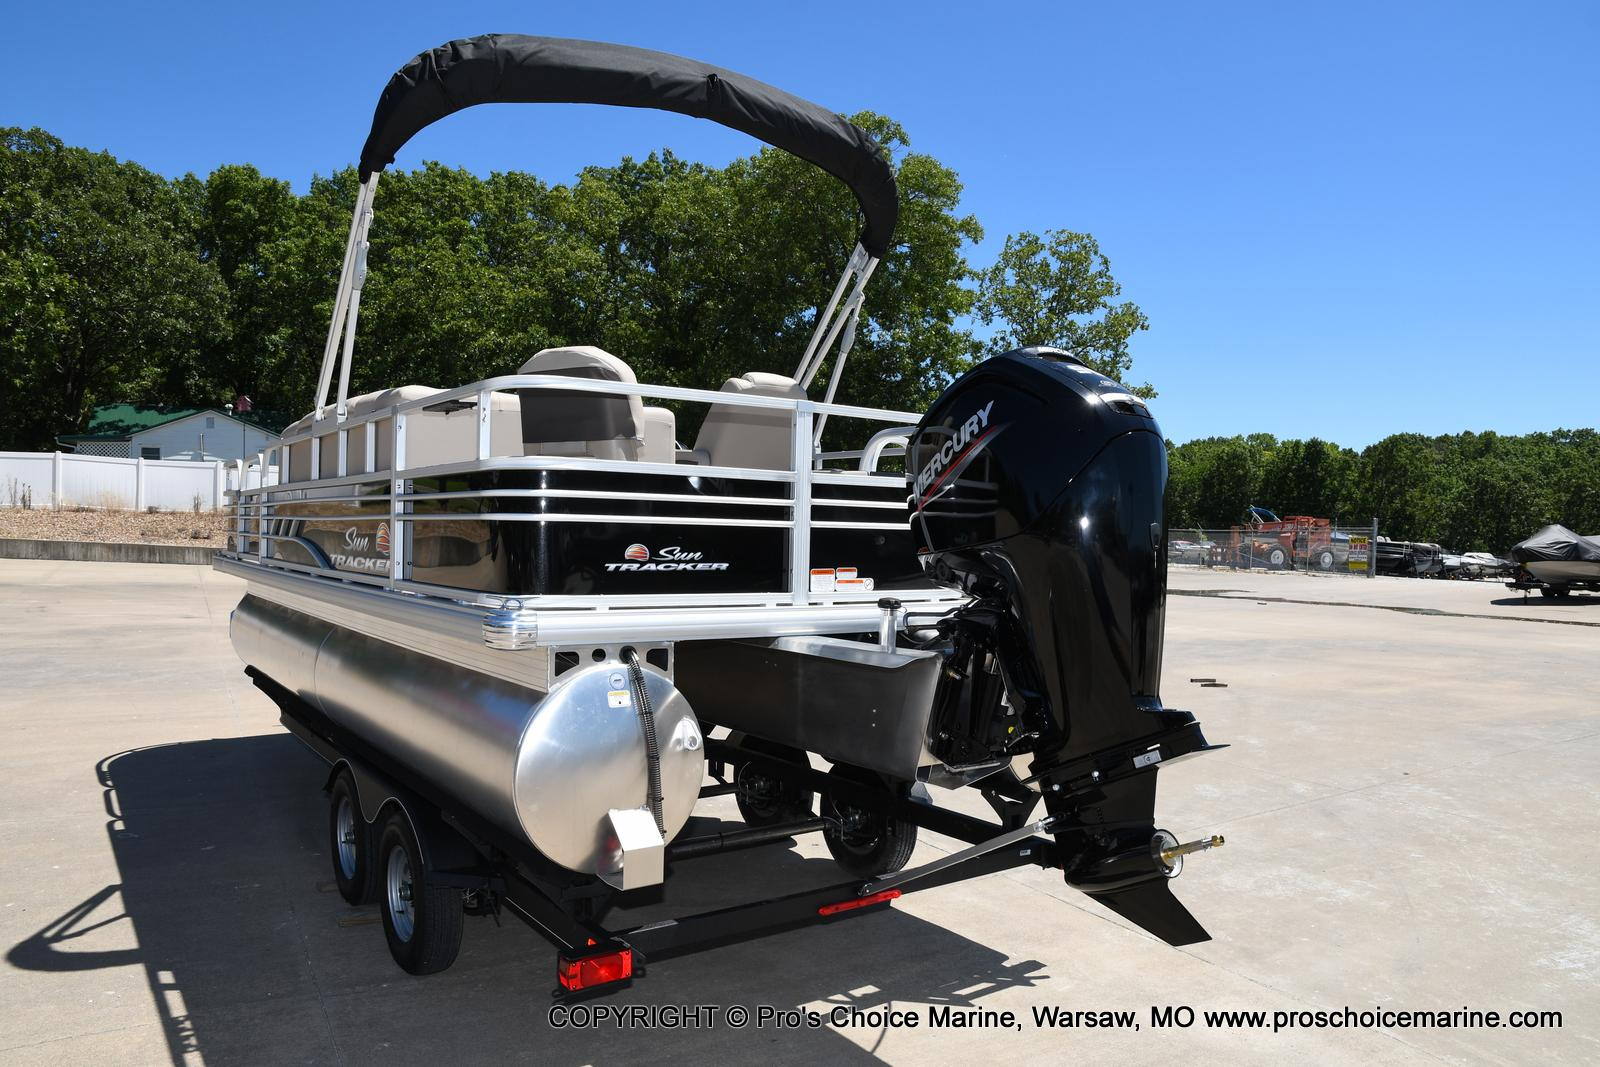 2021 Sun Tracker boat for sale, model of the boat is Fishin' Barge 20 DLX & Image # 39 of 50